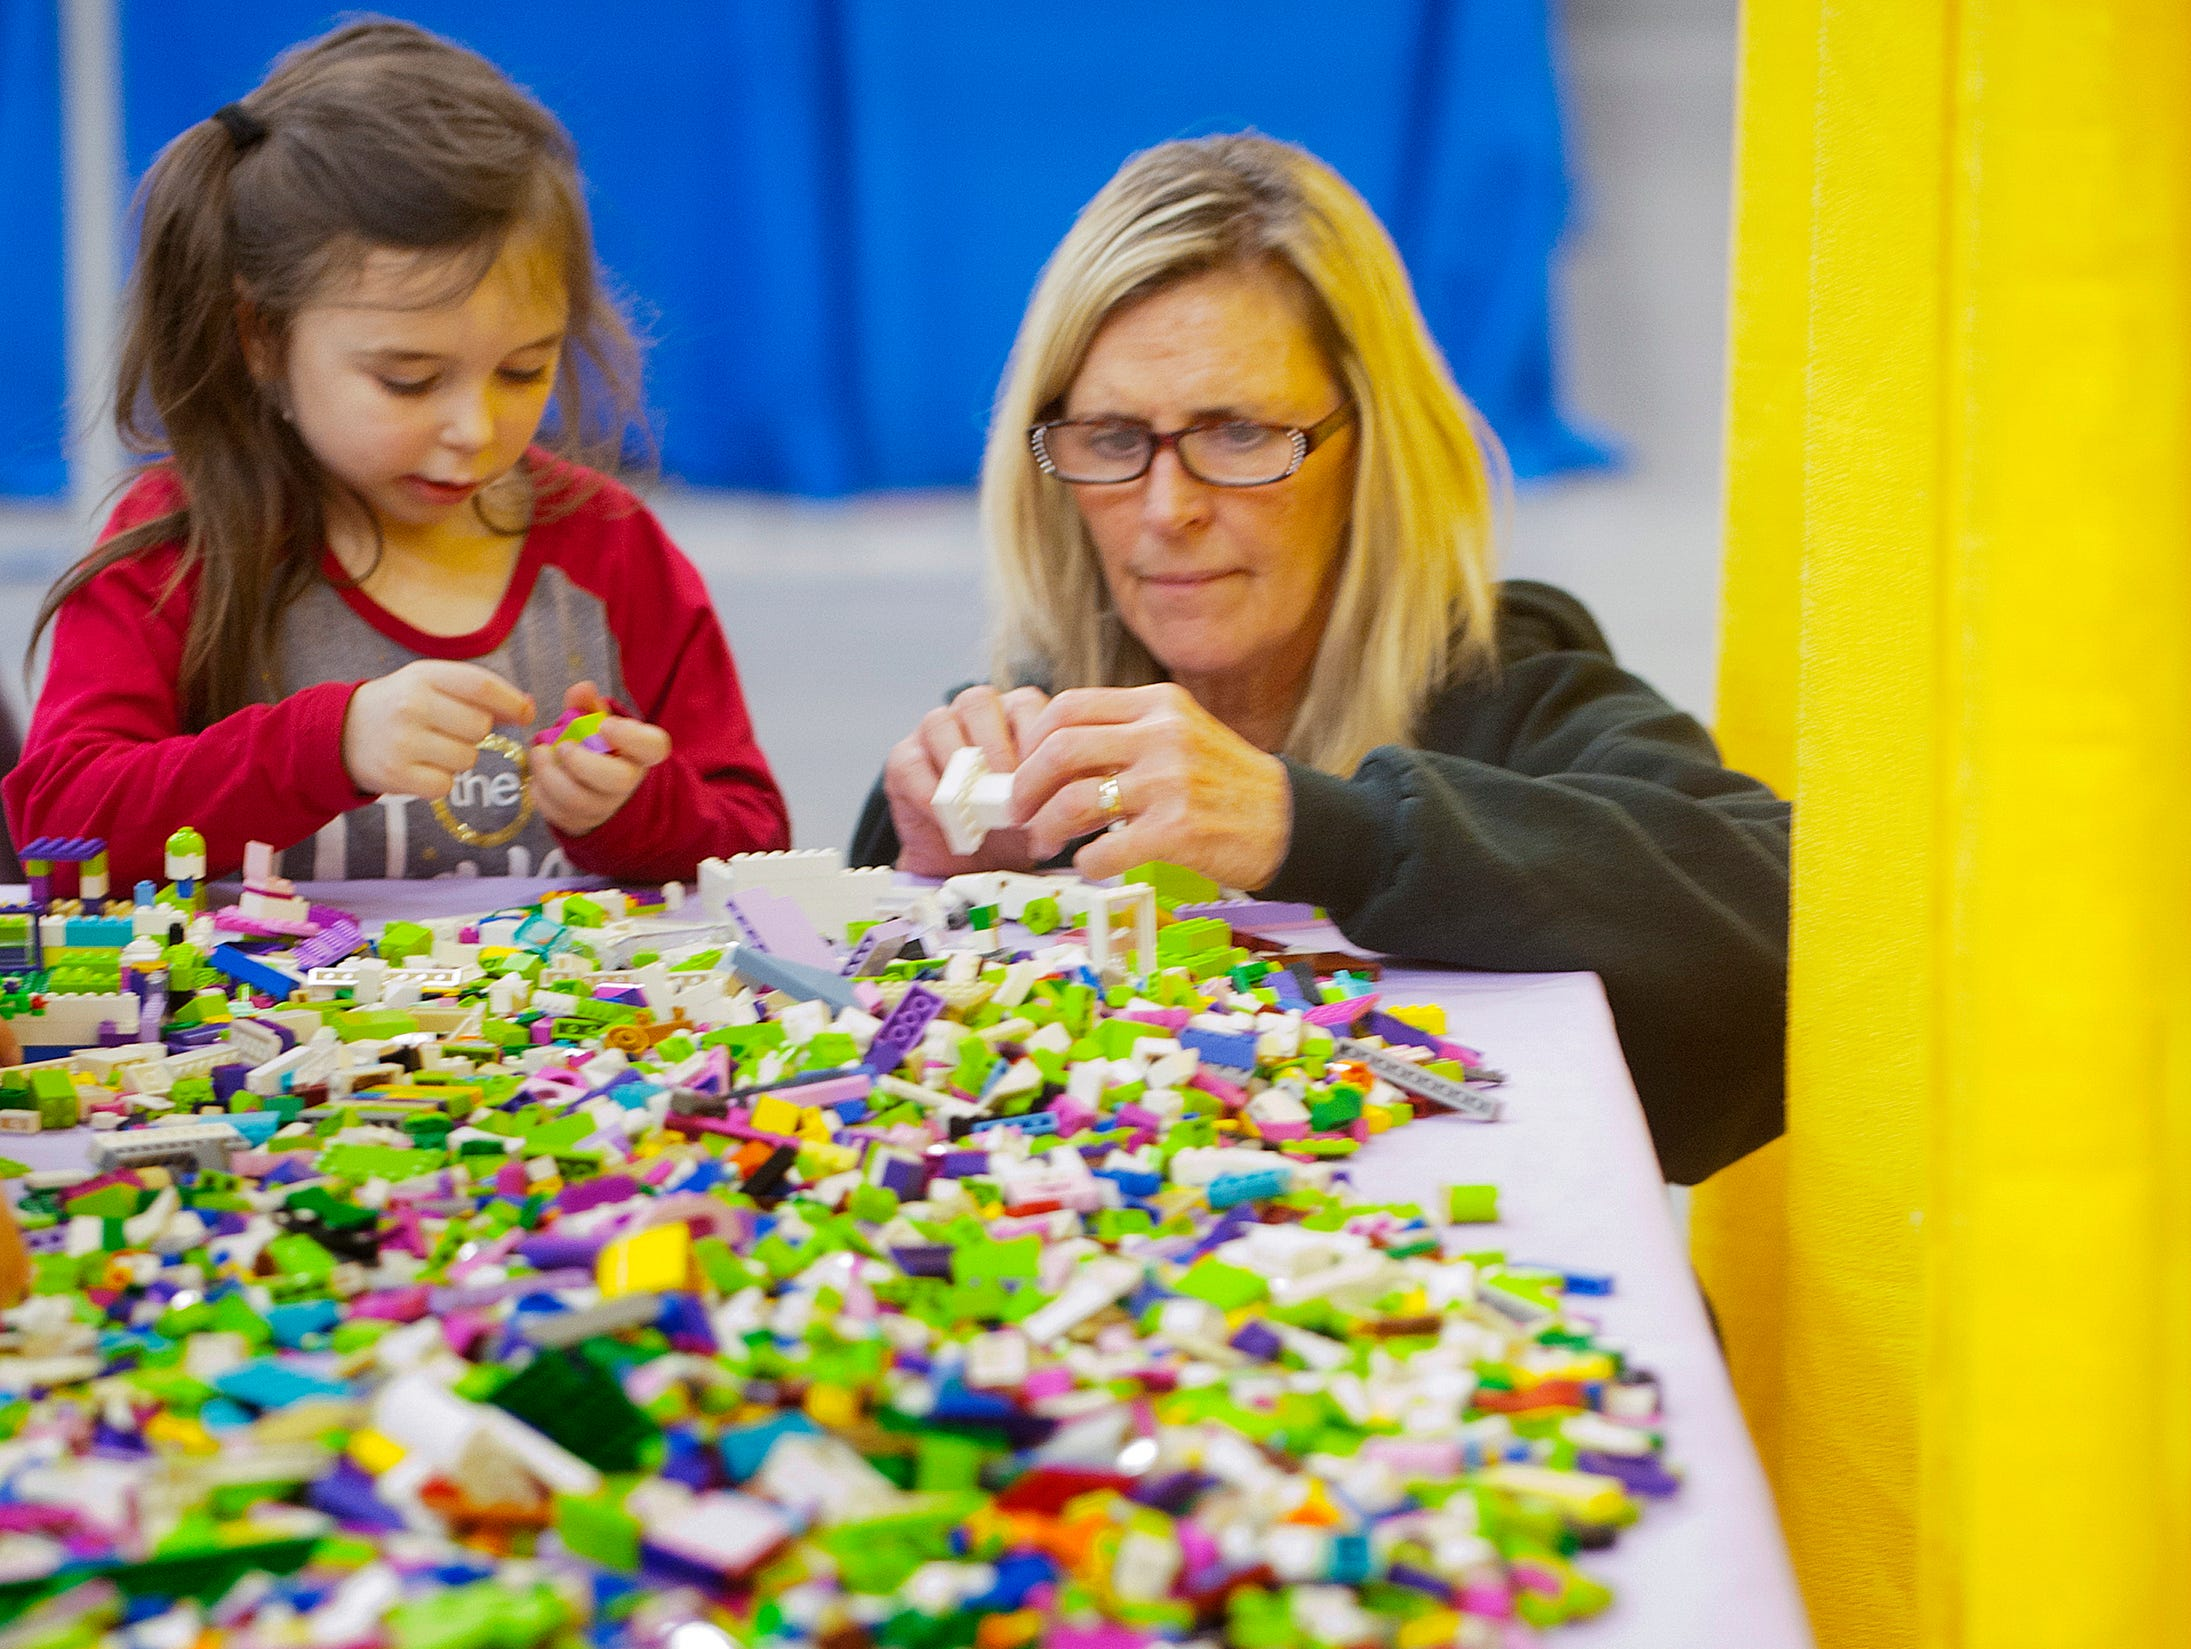 Kaley-Jane Bennett, age 5, of Taylorsville, plays with Legos with her grandmother, Lynn Cubero of Shepherdsvile, at the BrickUniverse Lego Fan Convention at the Kentucky International Convention Center in downtown Louisville.19 January 2019